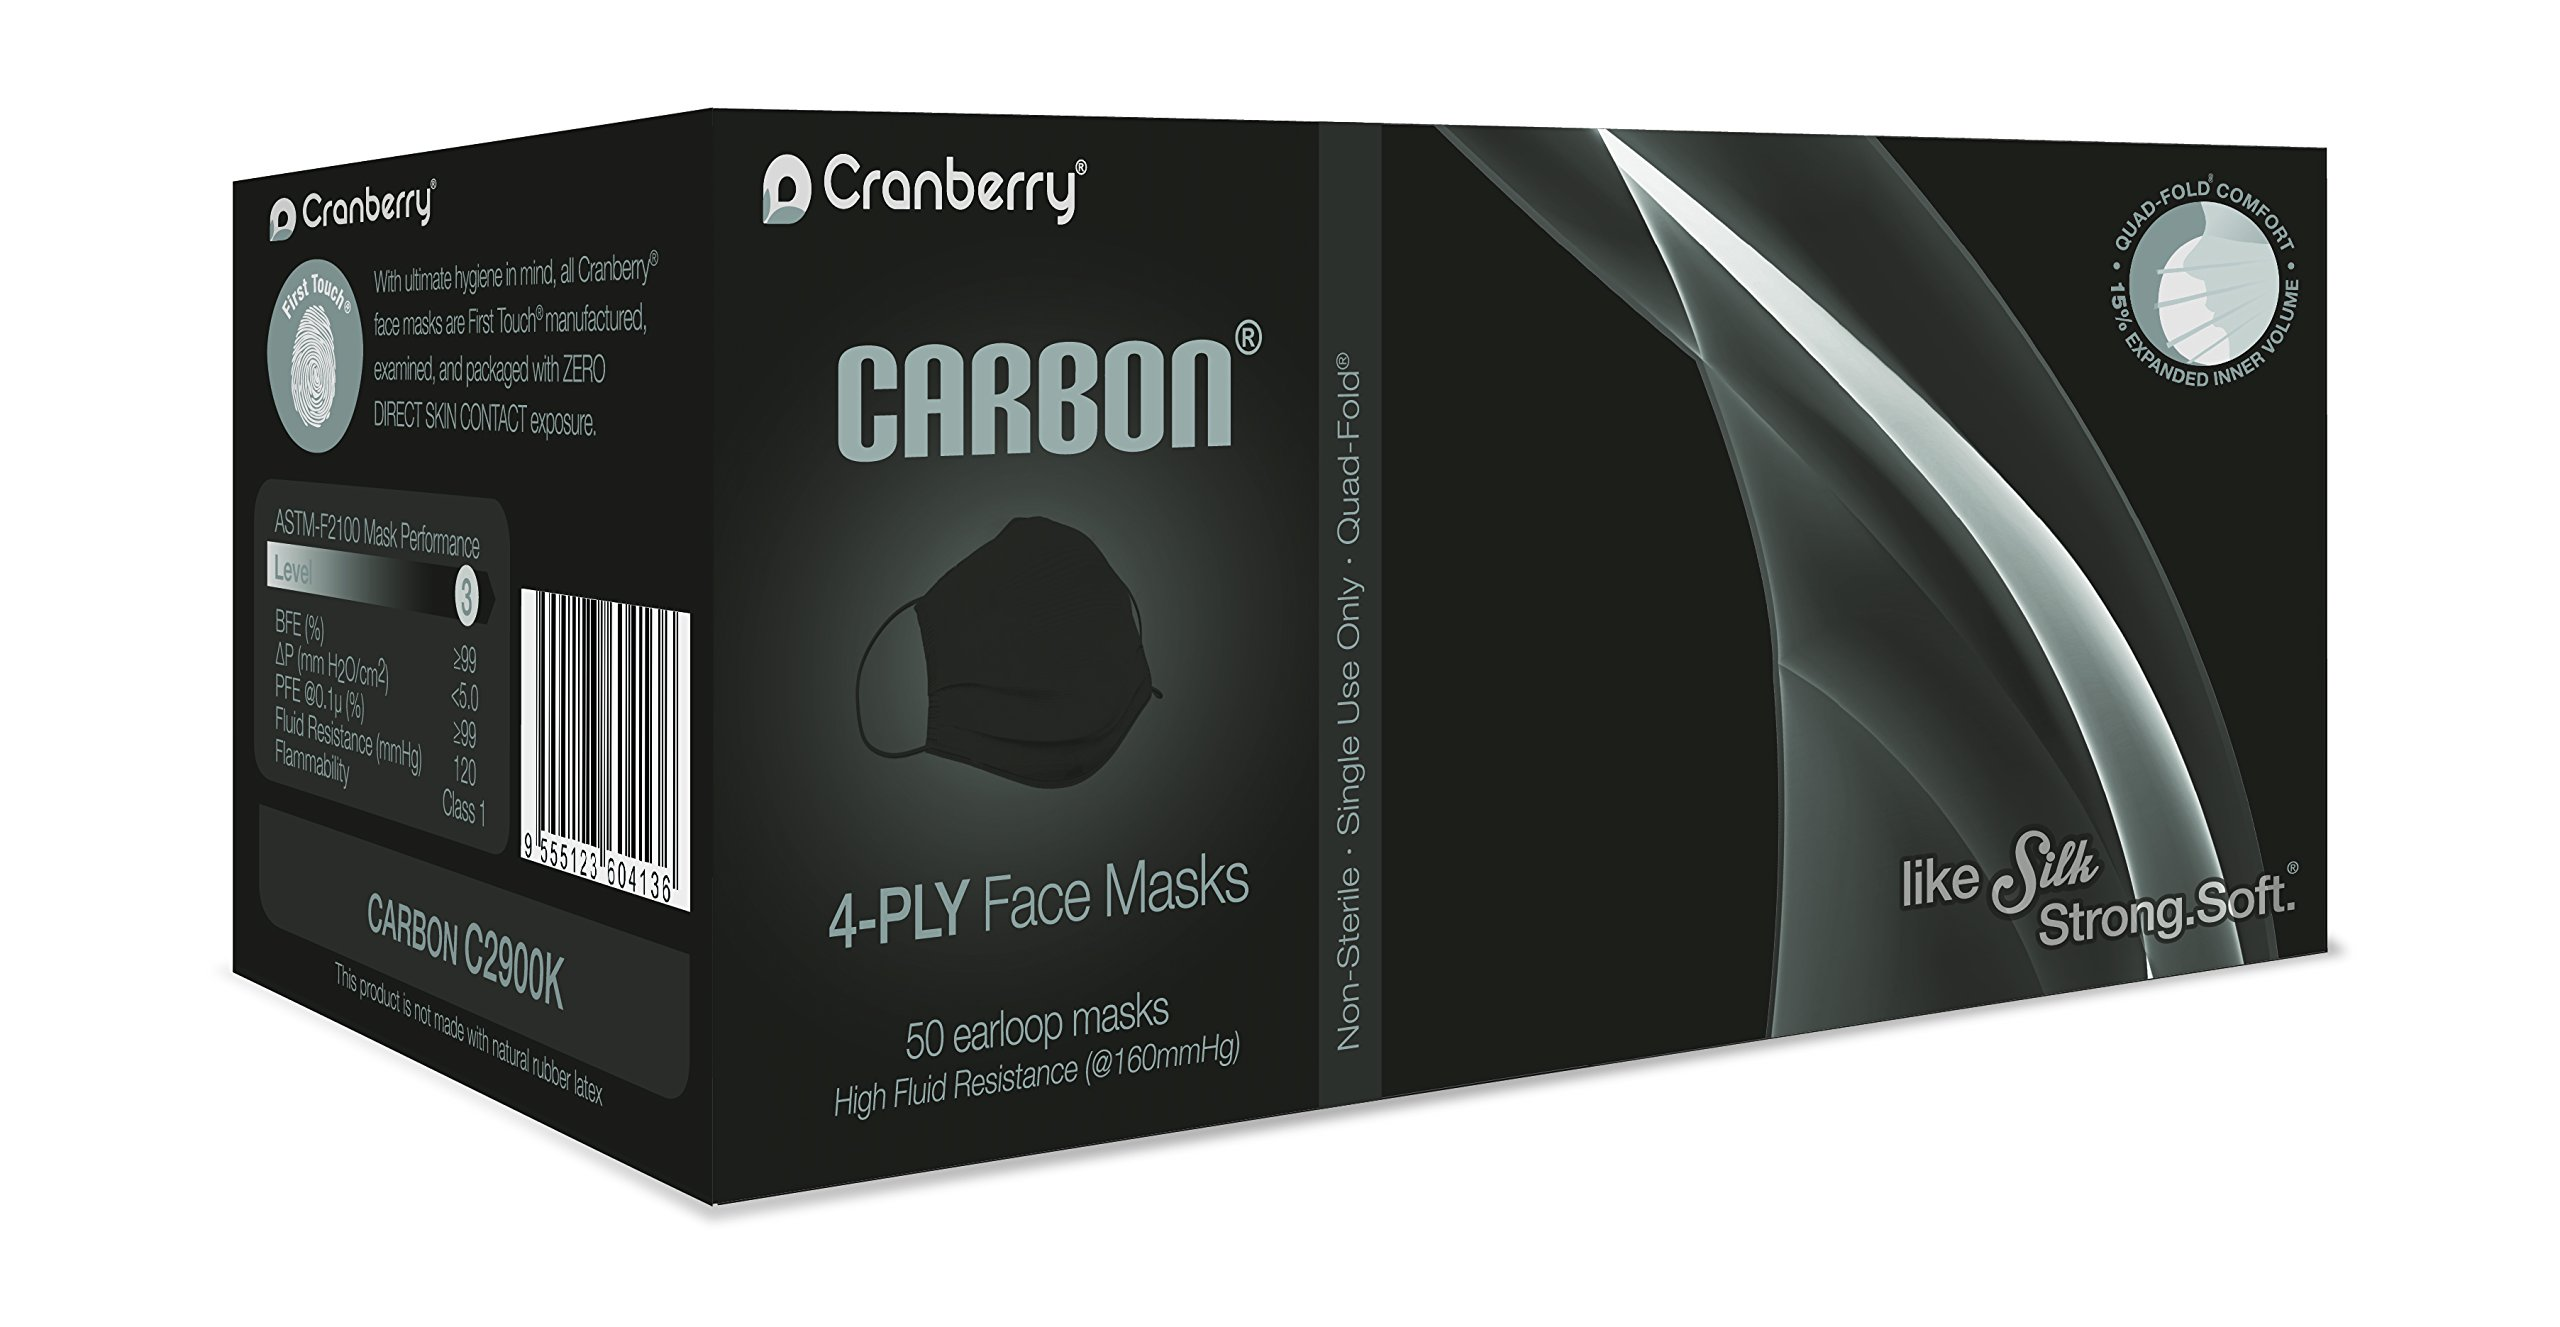 Cranberry USA C2900K Cranberry Carbon Earloop Face Masks, Atsm Level 3, Black (Pack of 50)